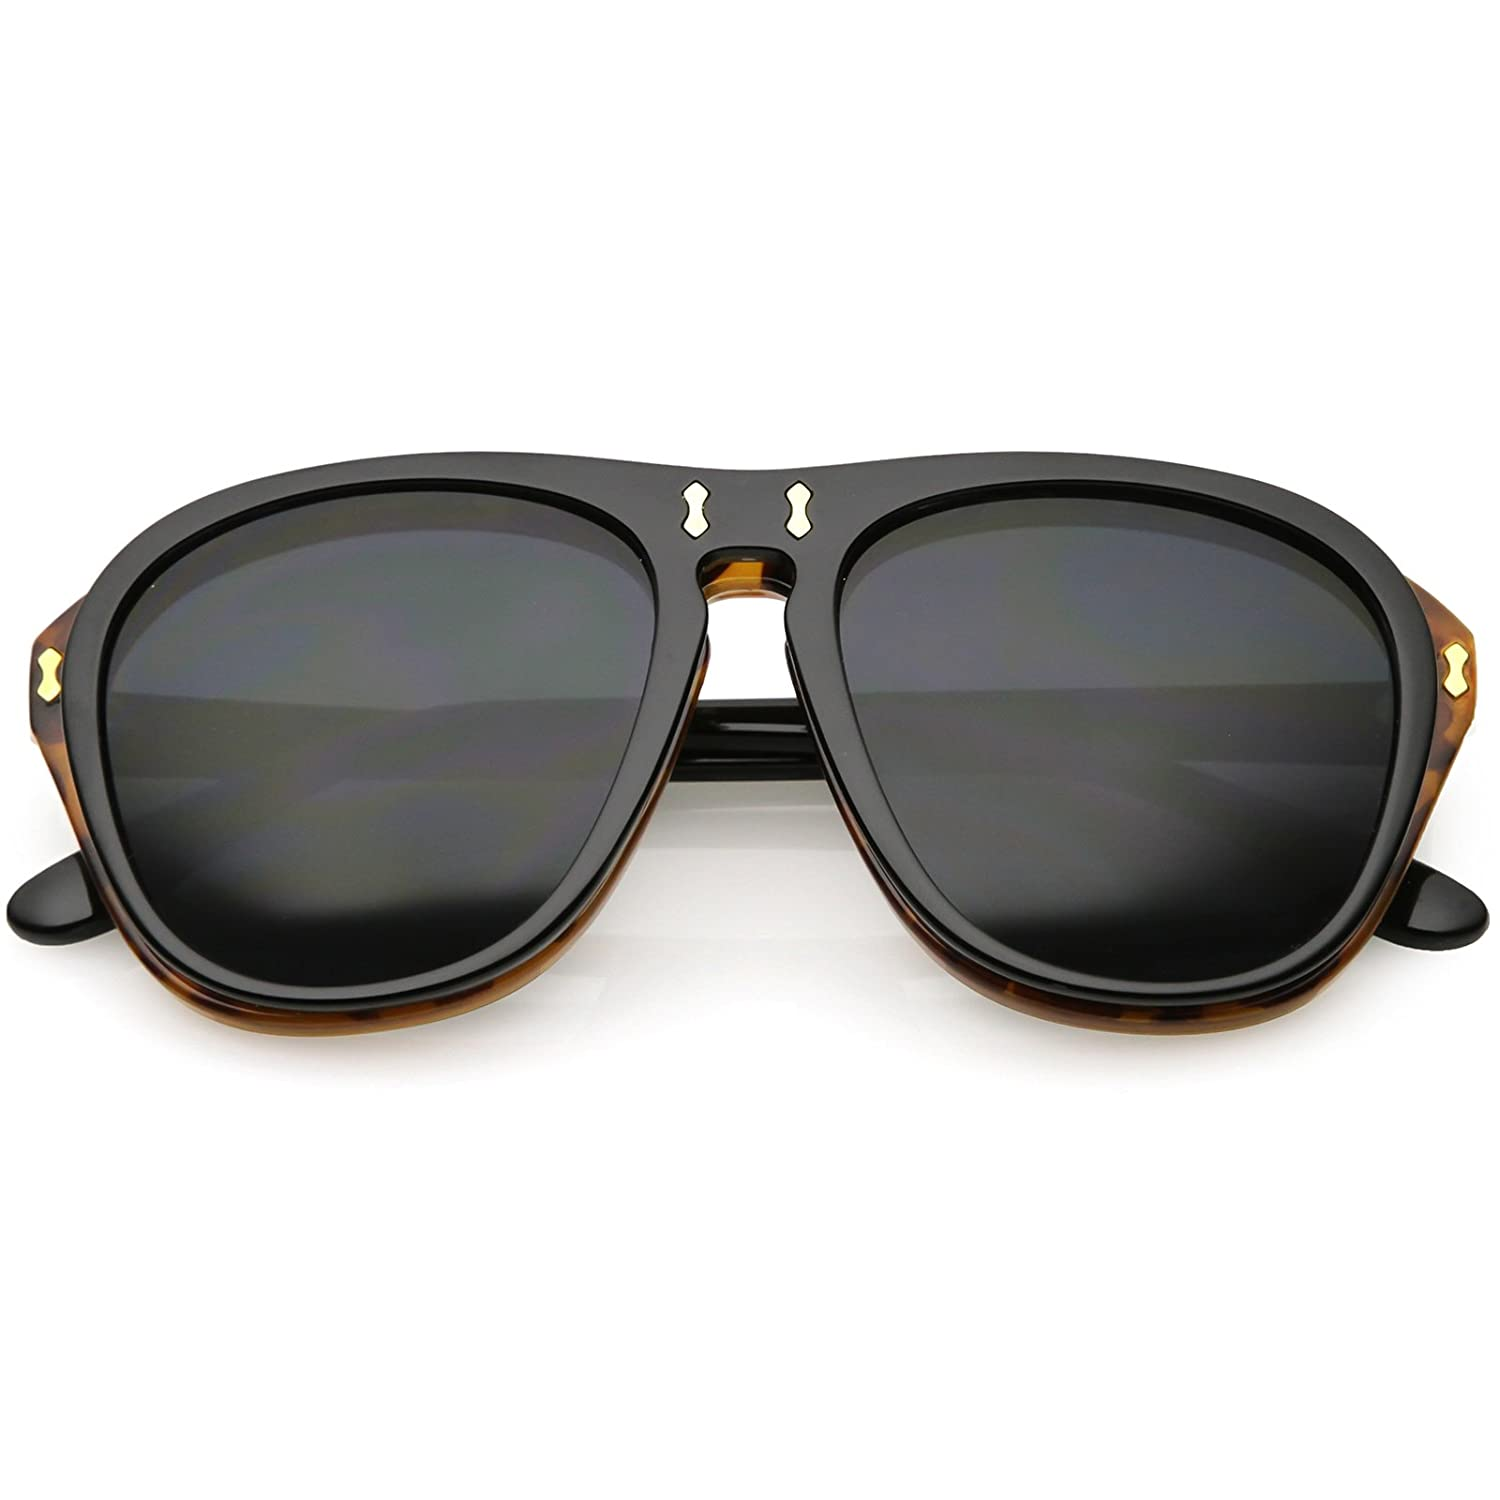 ced9026df618 Amazon.com: sunglassLA - Retro Vintage Mcgregor Flip Up Aviator Sunglasses  For Men 55mm (Black Tortoise/Smoke): Clothing